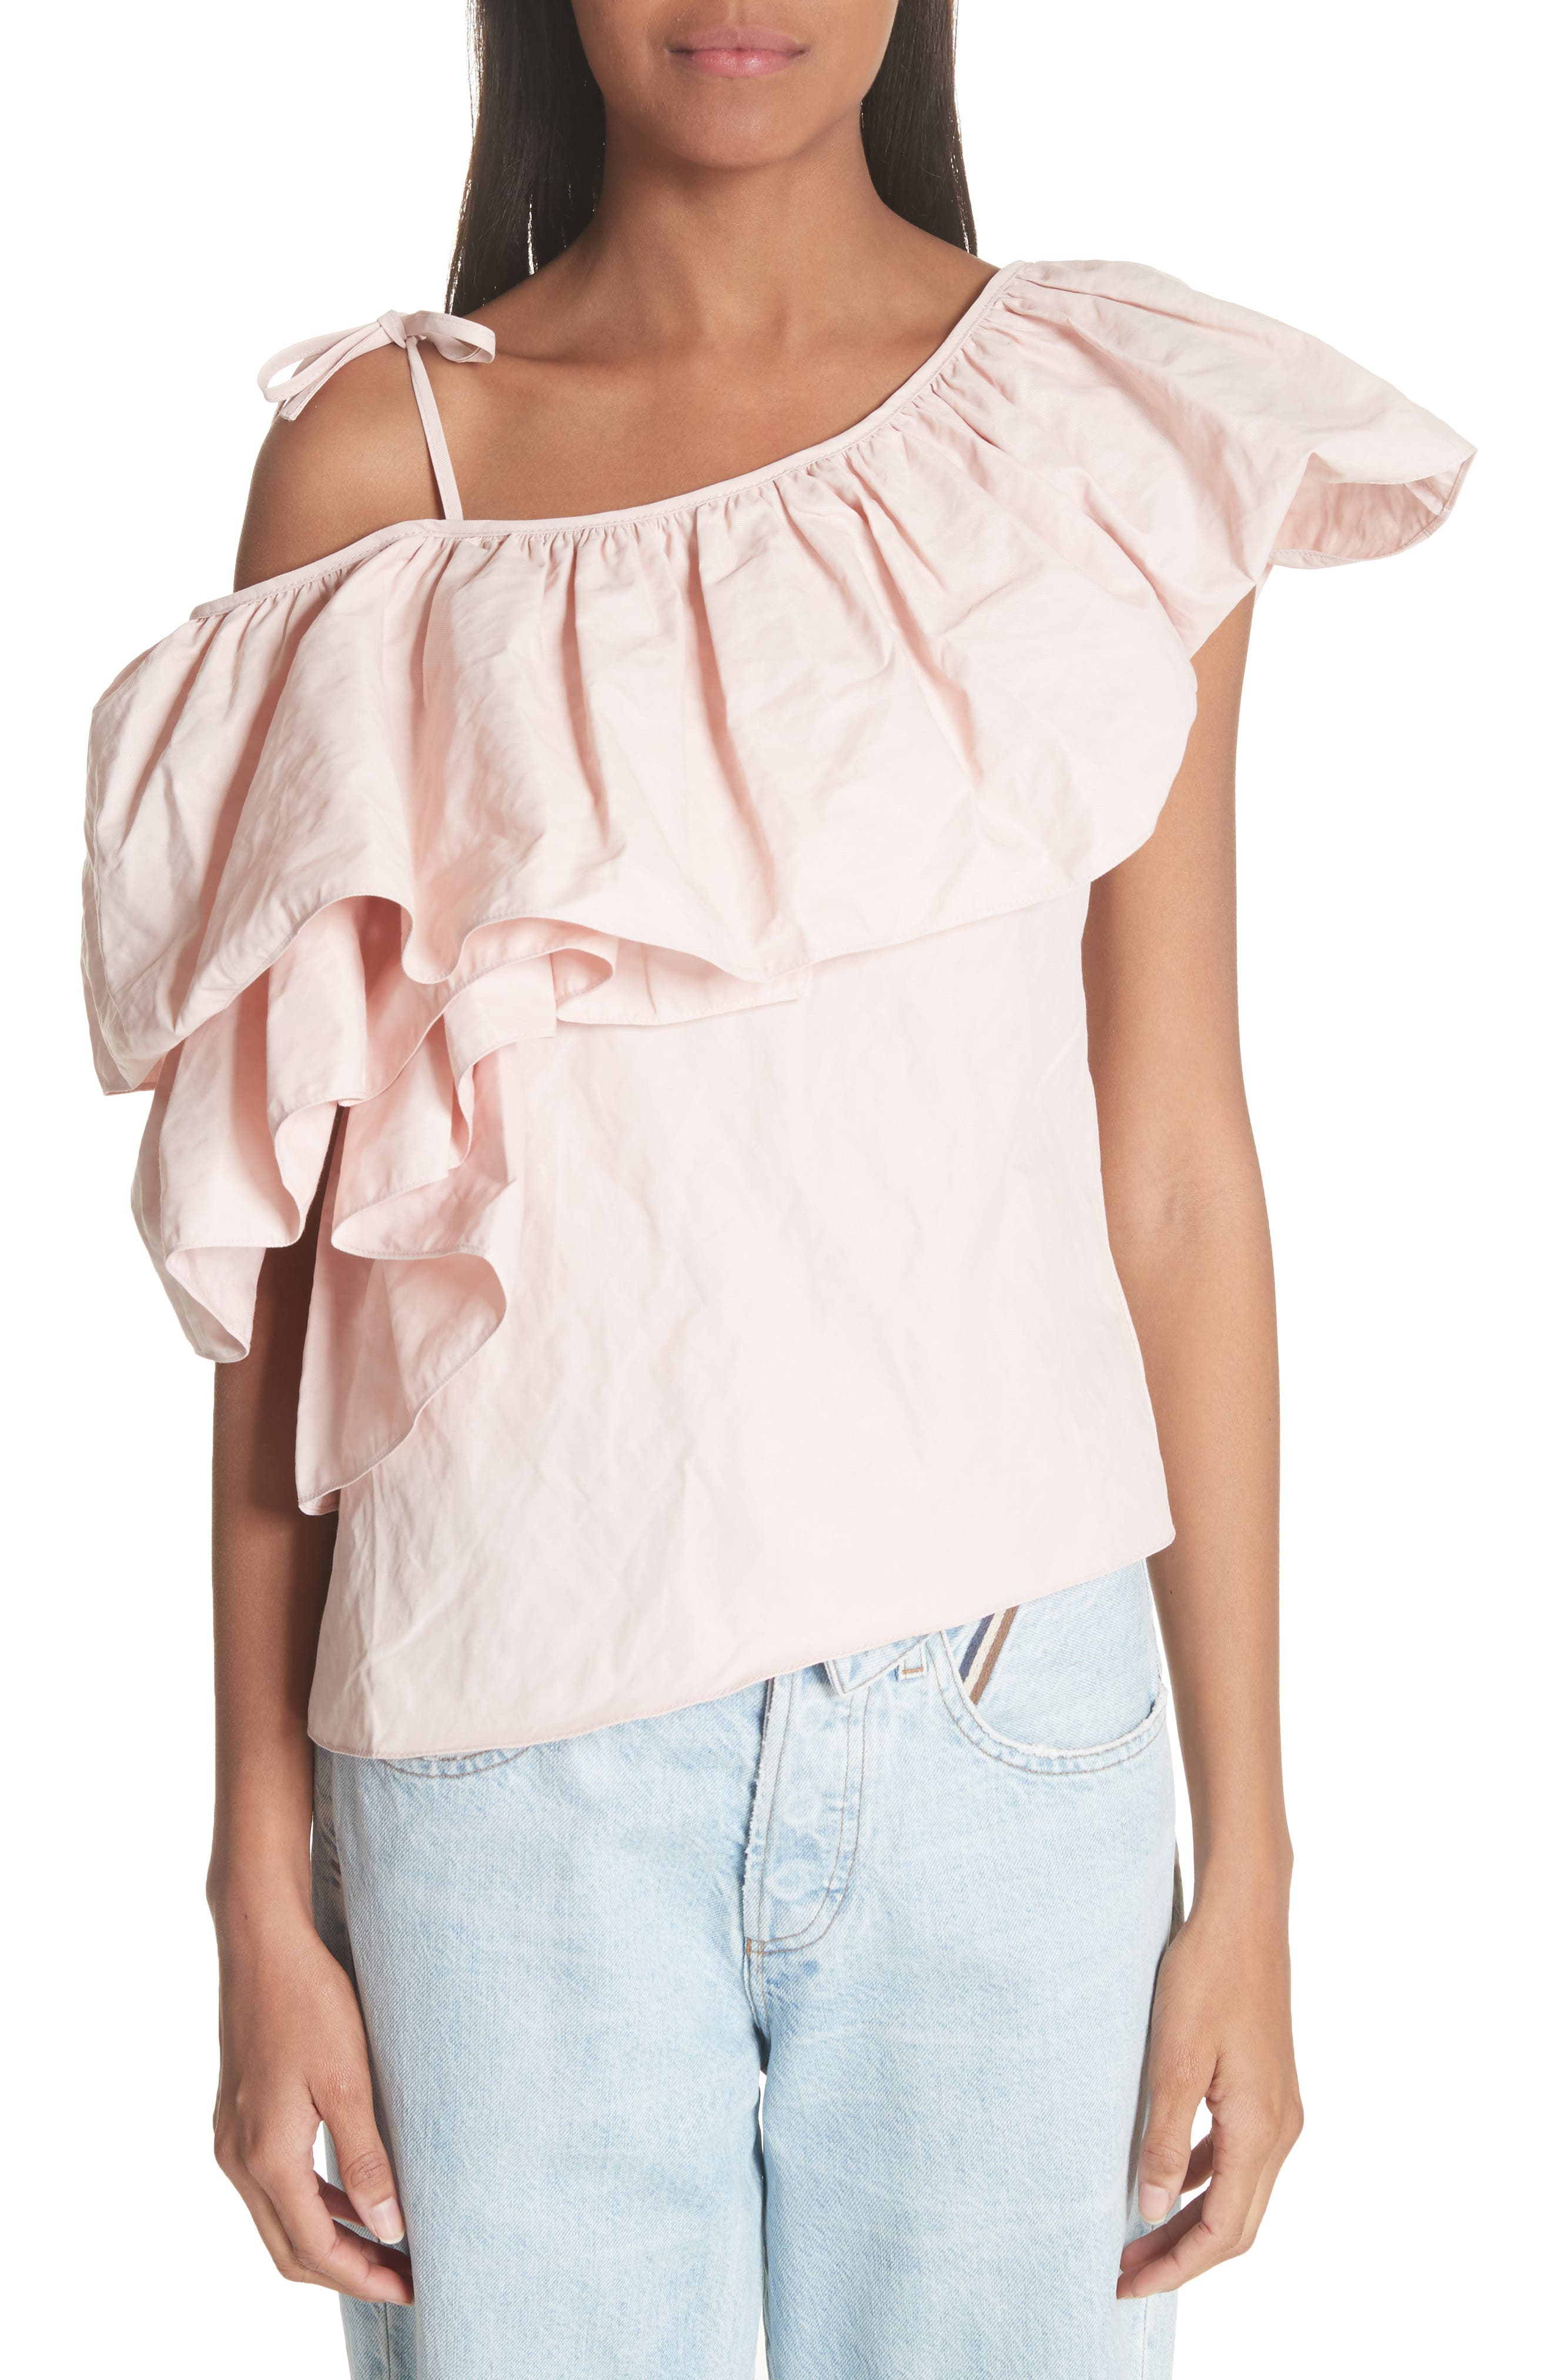 Marques'Almeida One Shoulder Ruffle Top,                             Main thumbnail 1, color,                             Pale Pink